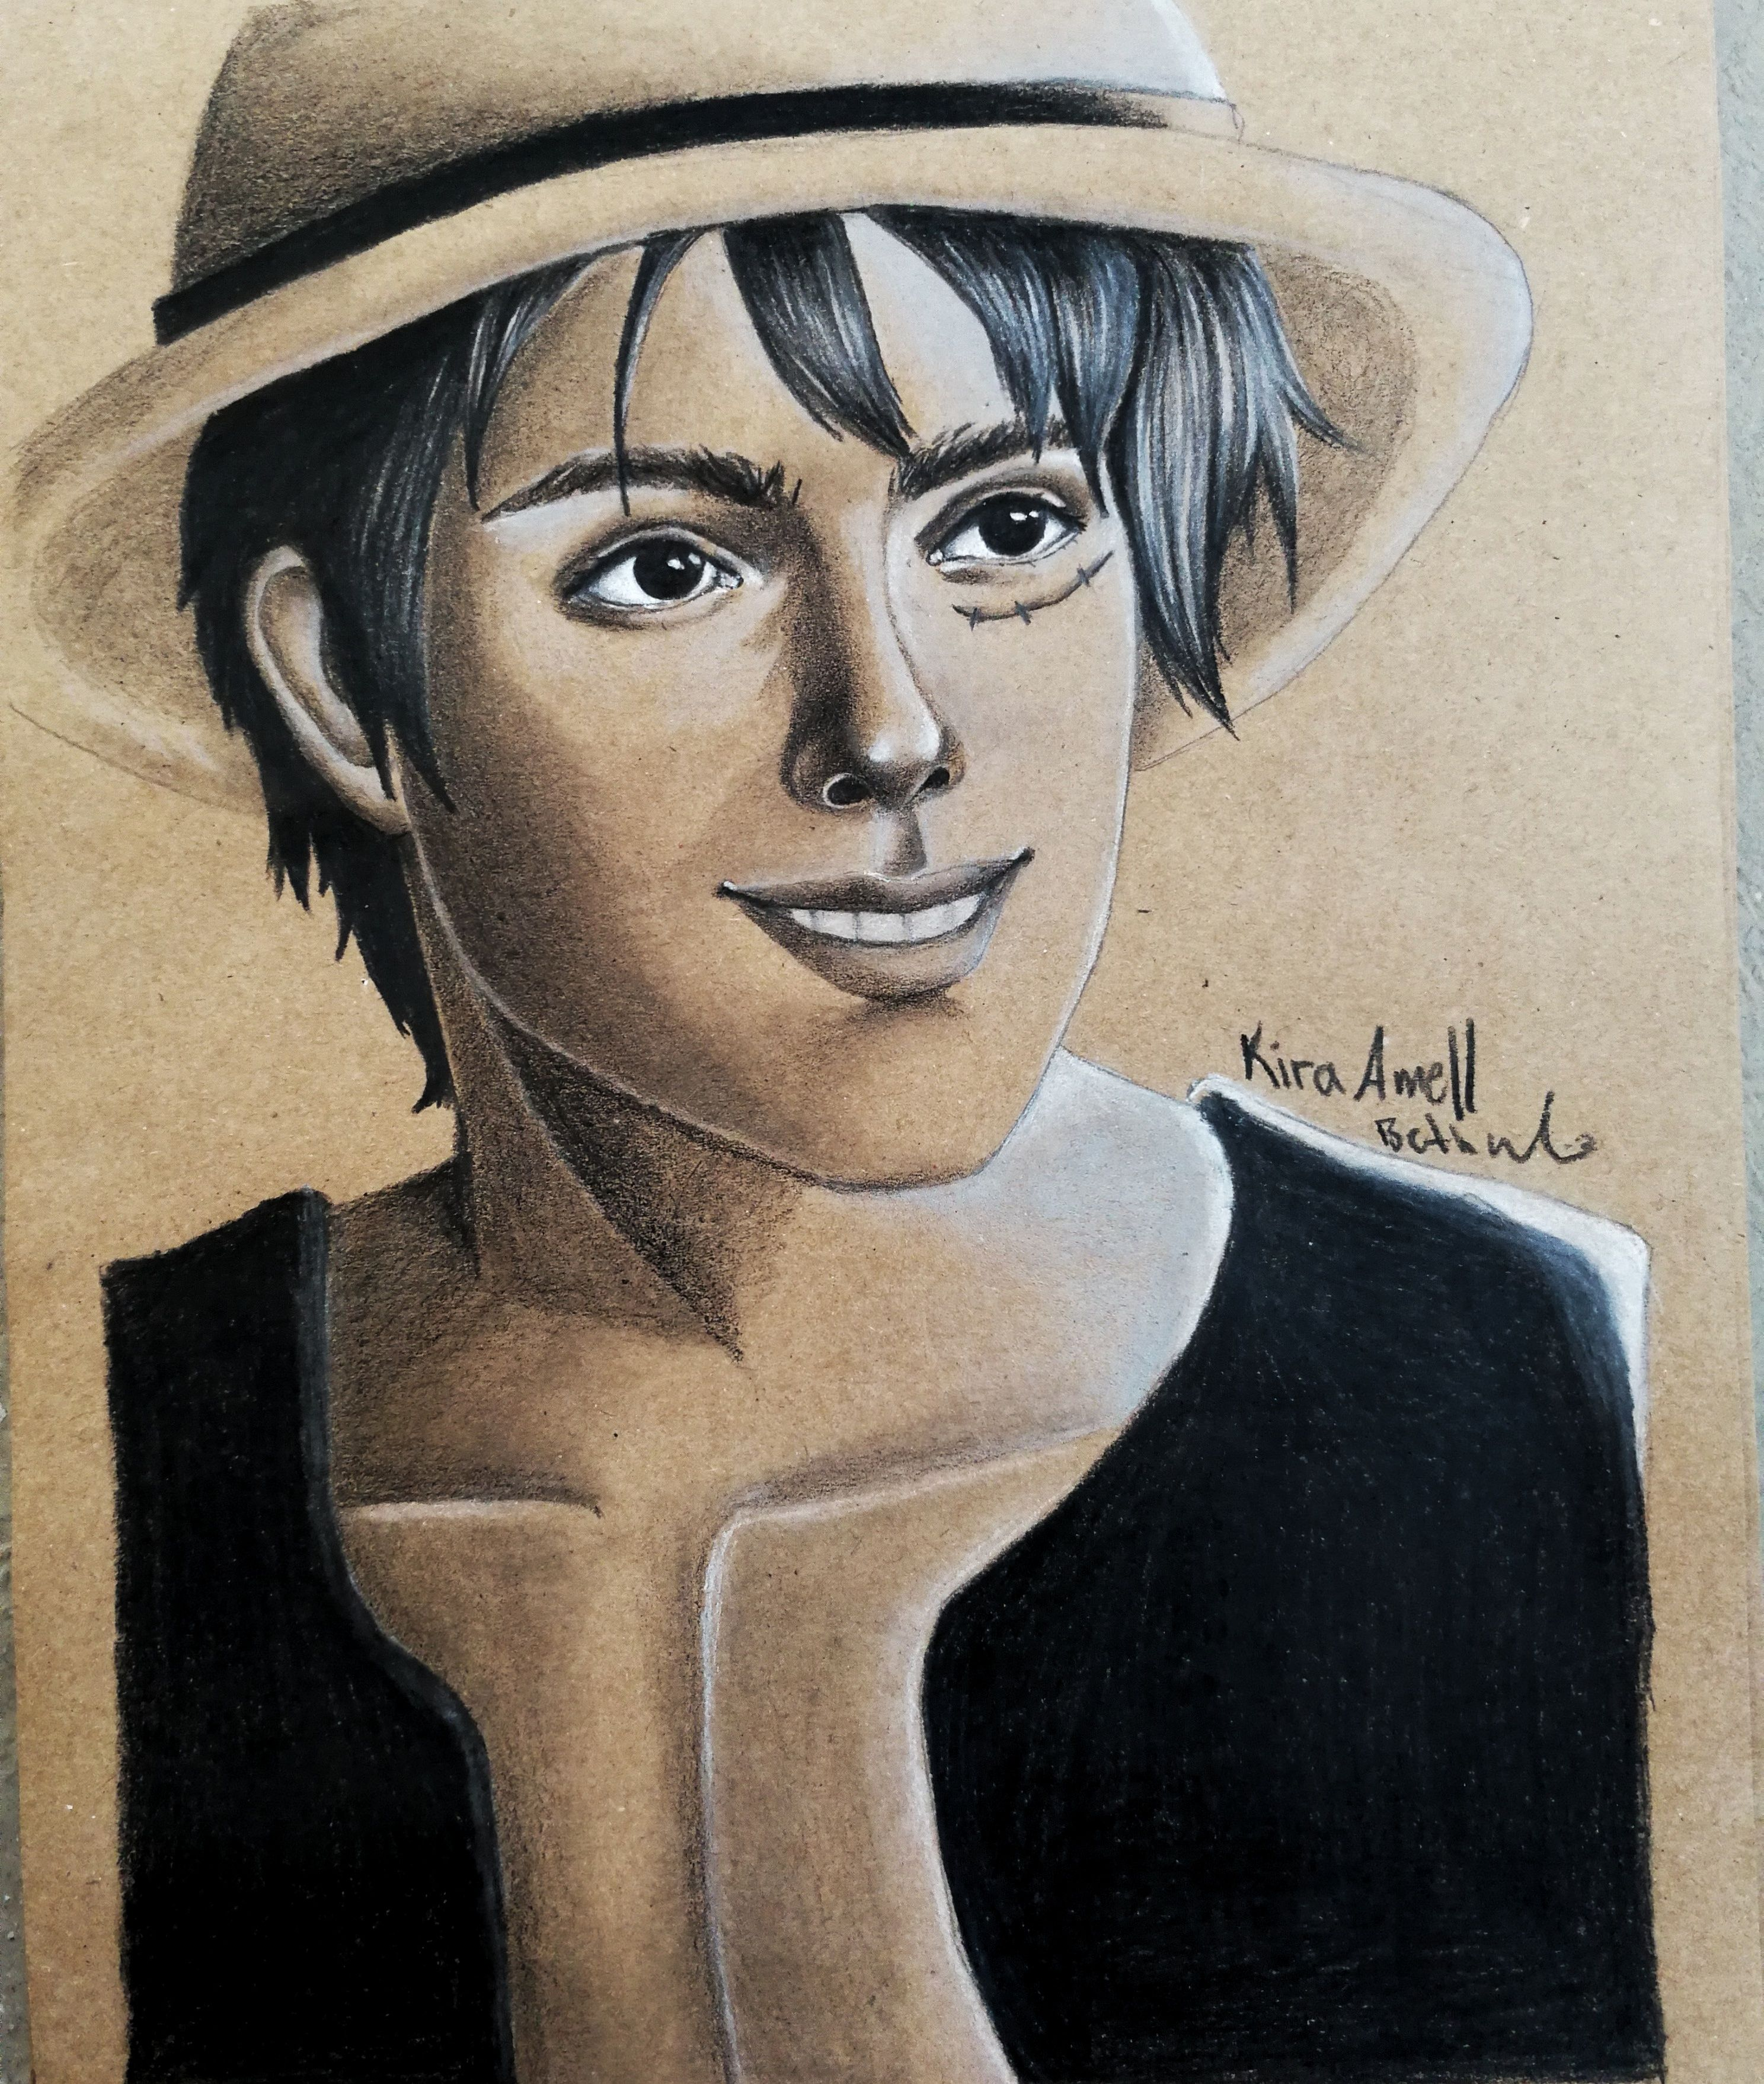 Monkey D Luffy From One Piece Realisticstyle